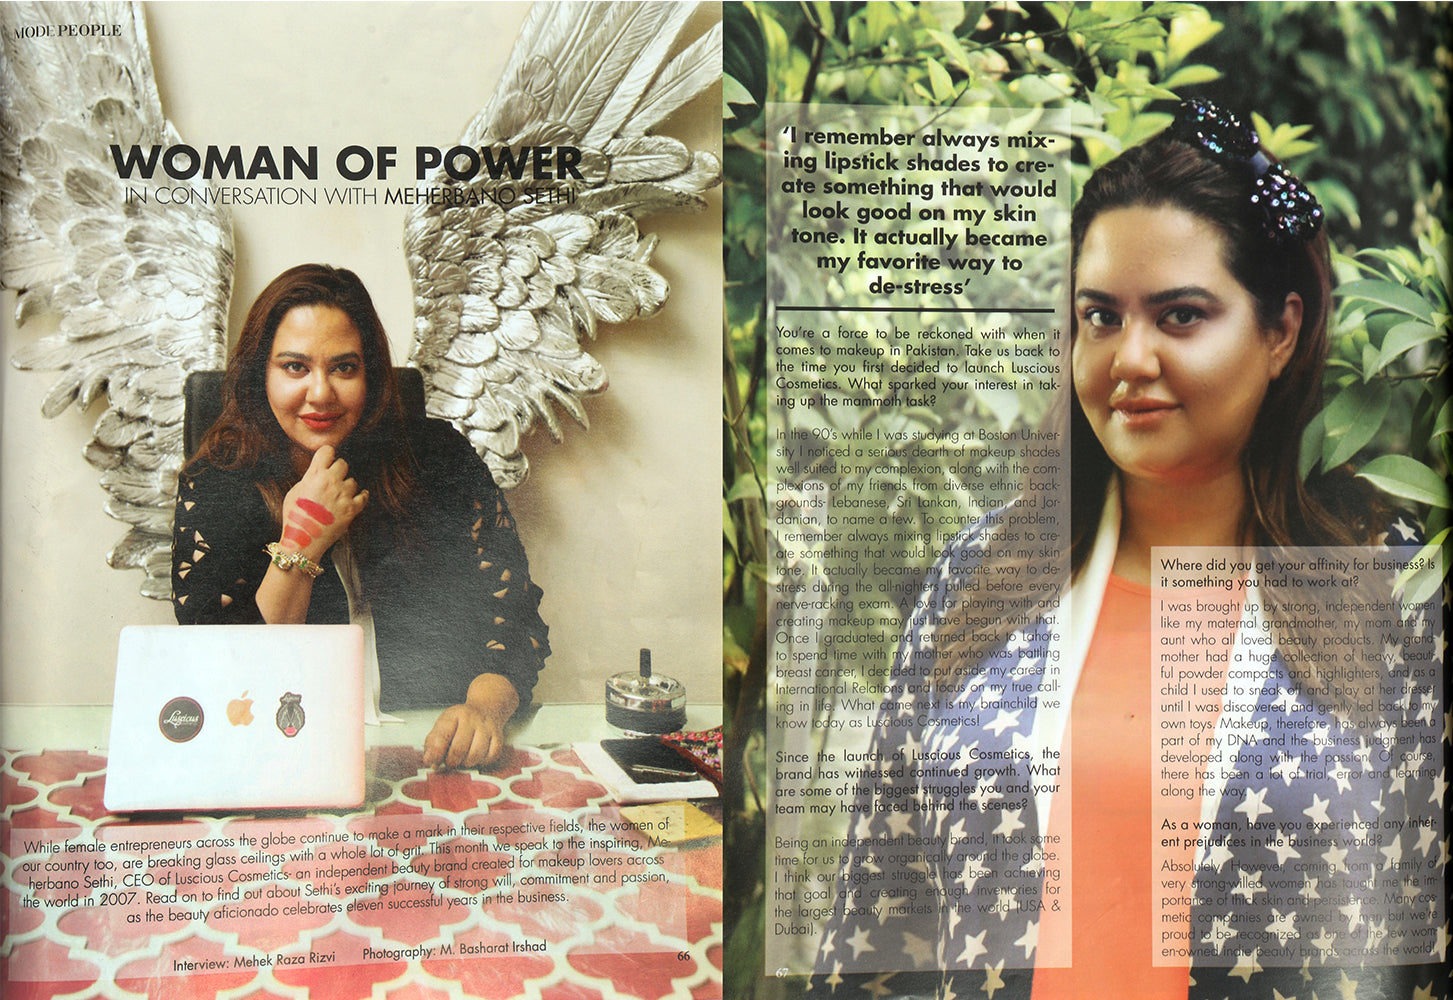 Mode Magazine - Woman Of Power